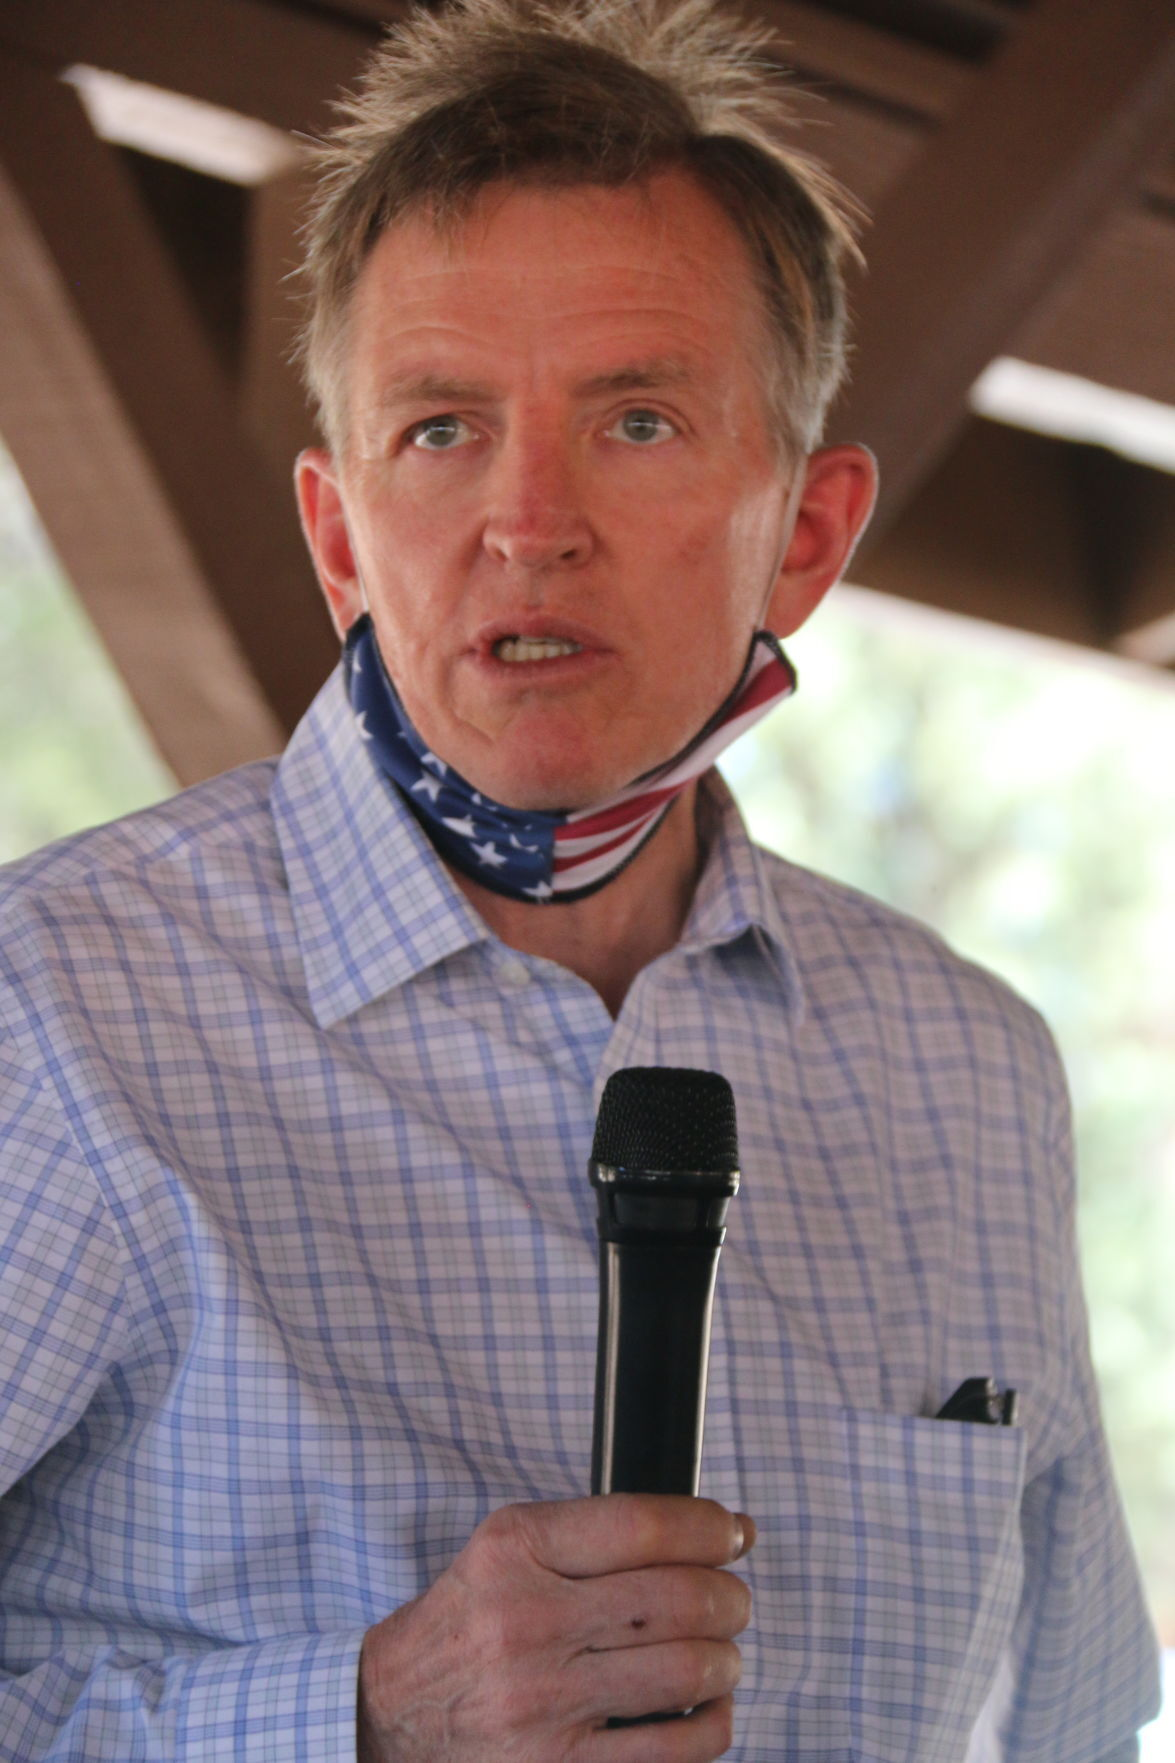 Republican Paul Gosar